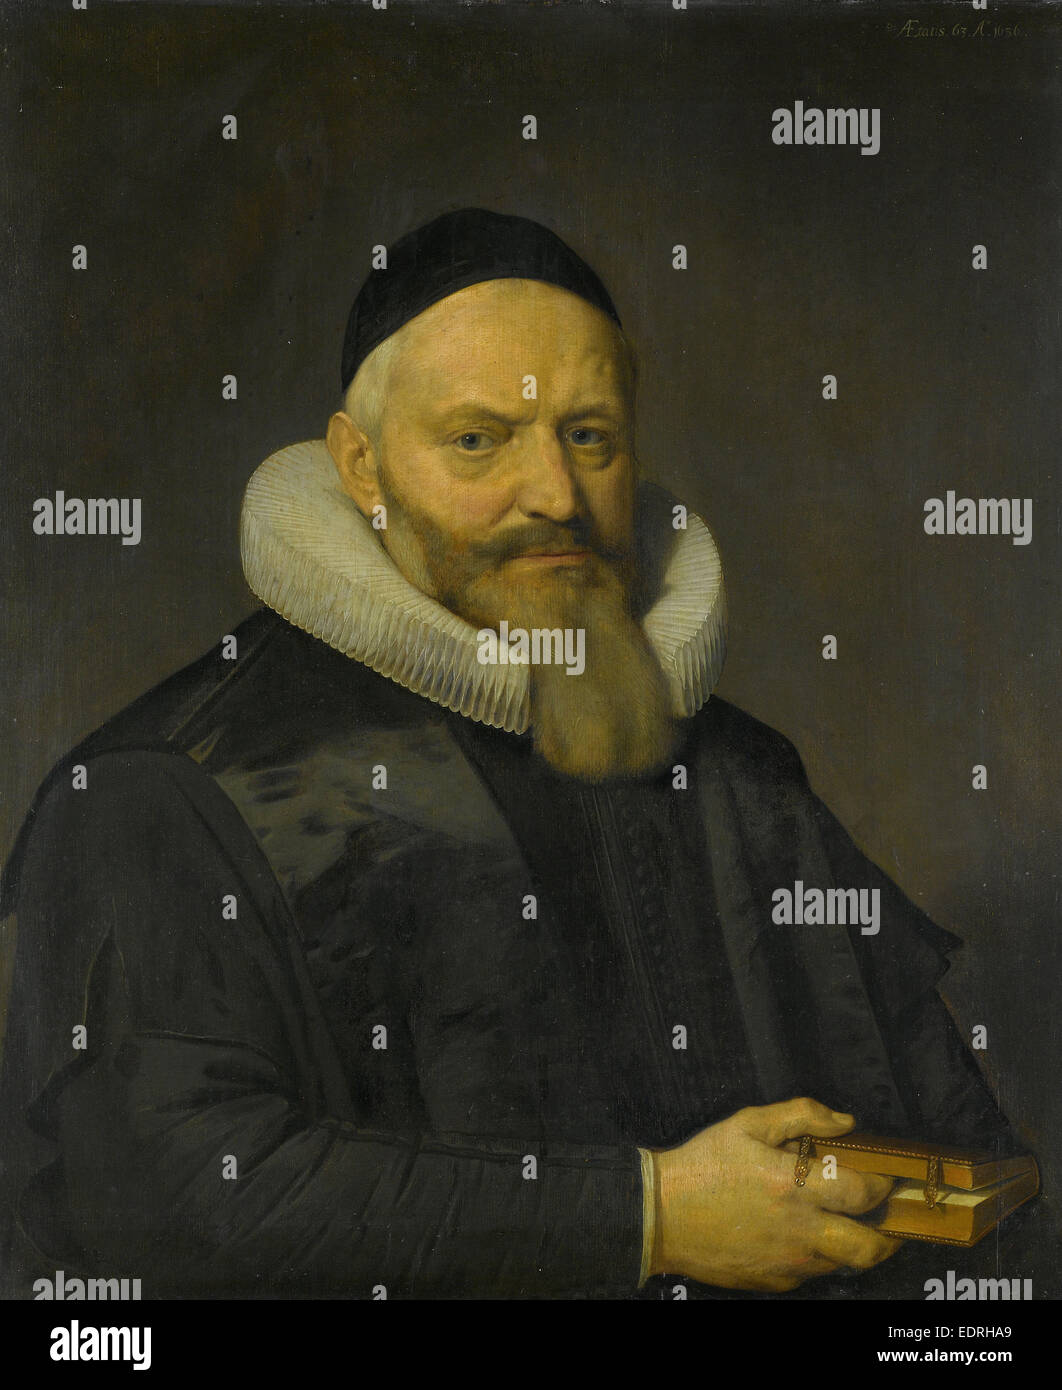 Portrait of Anthony de Wale, Professor of Theology in Leiden, The Netherlands, David Bailly, 1636 - Stock Image